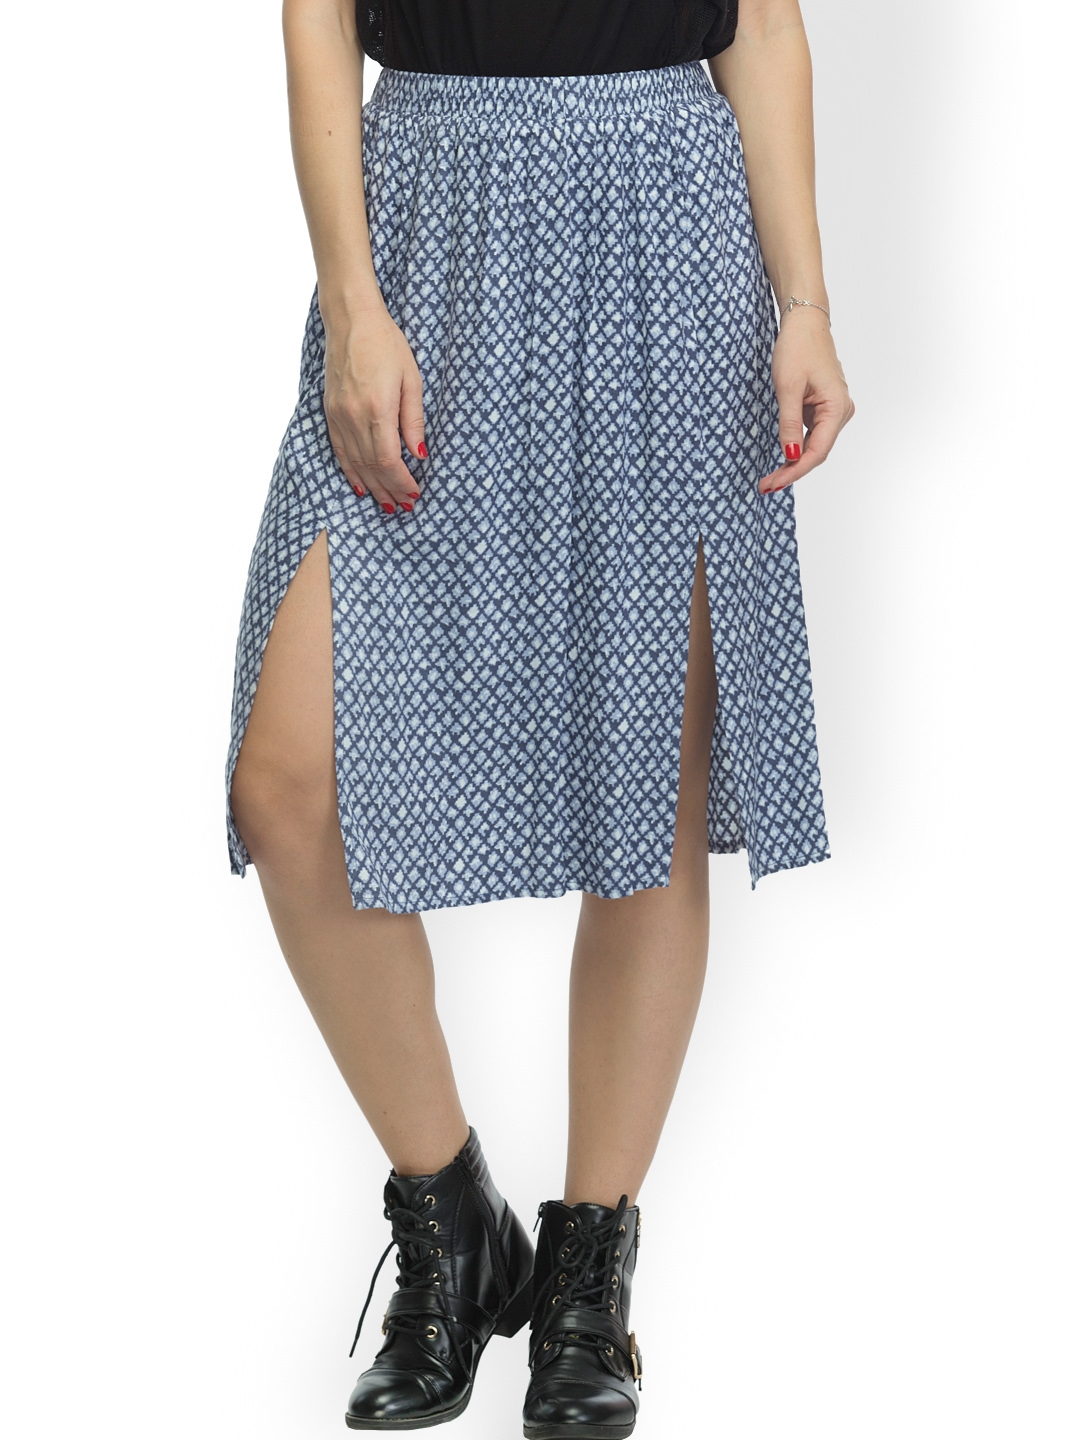 cc5e5bdf7911d Buy Oxolloxo Blue Printed A Line Skirt - Skirts for Women 980308 ...